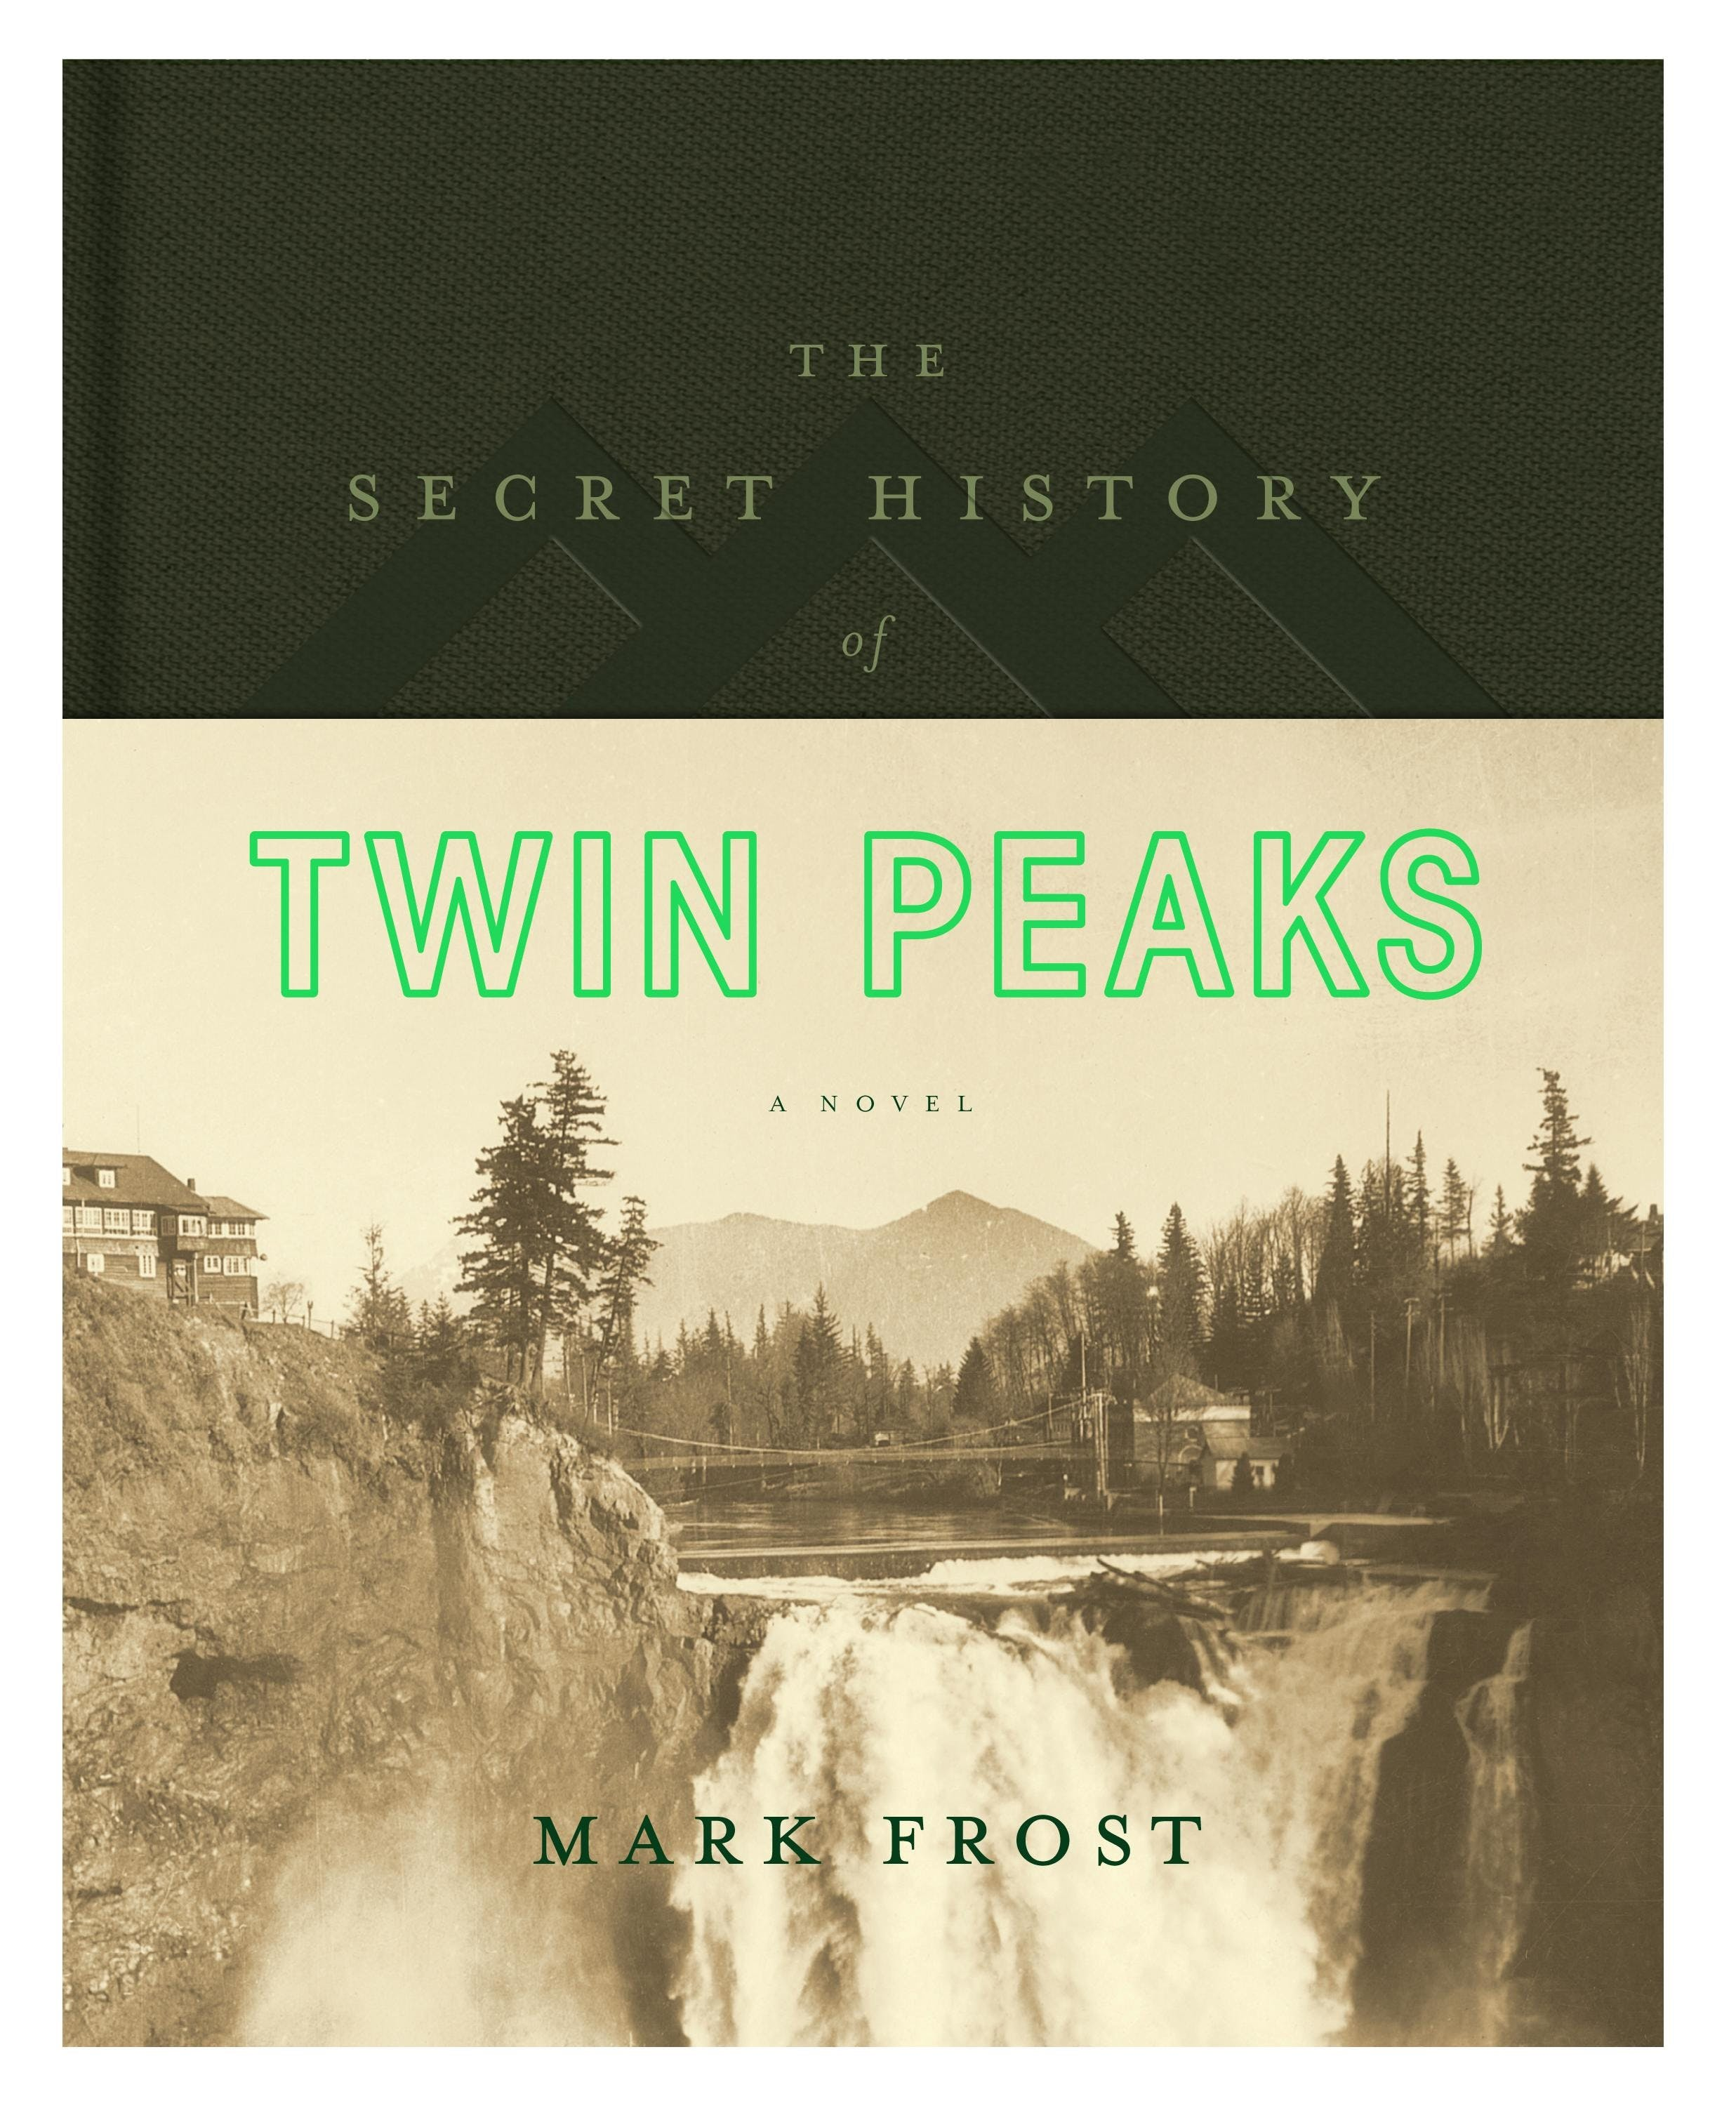 Image of The Secret History of Twin Peaks